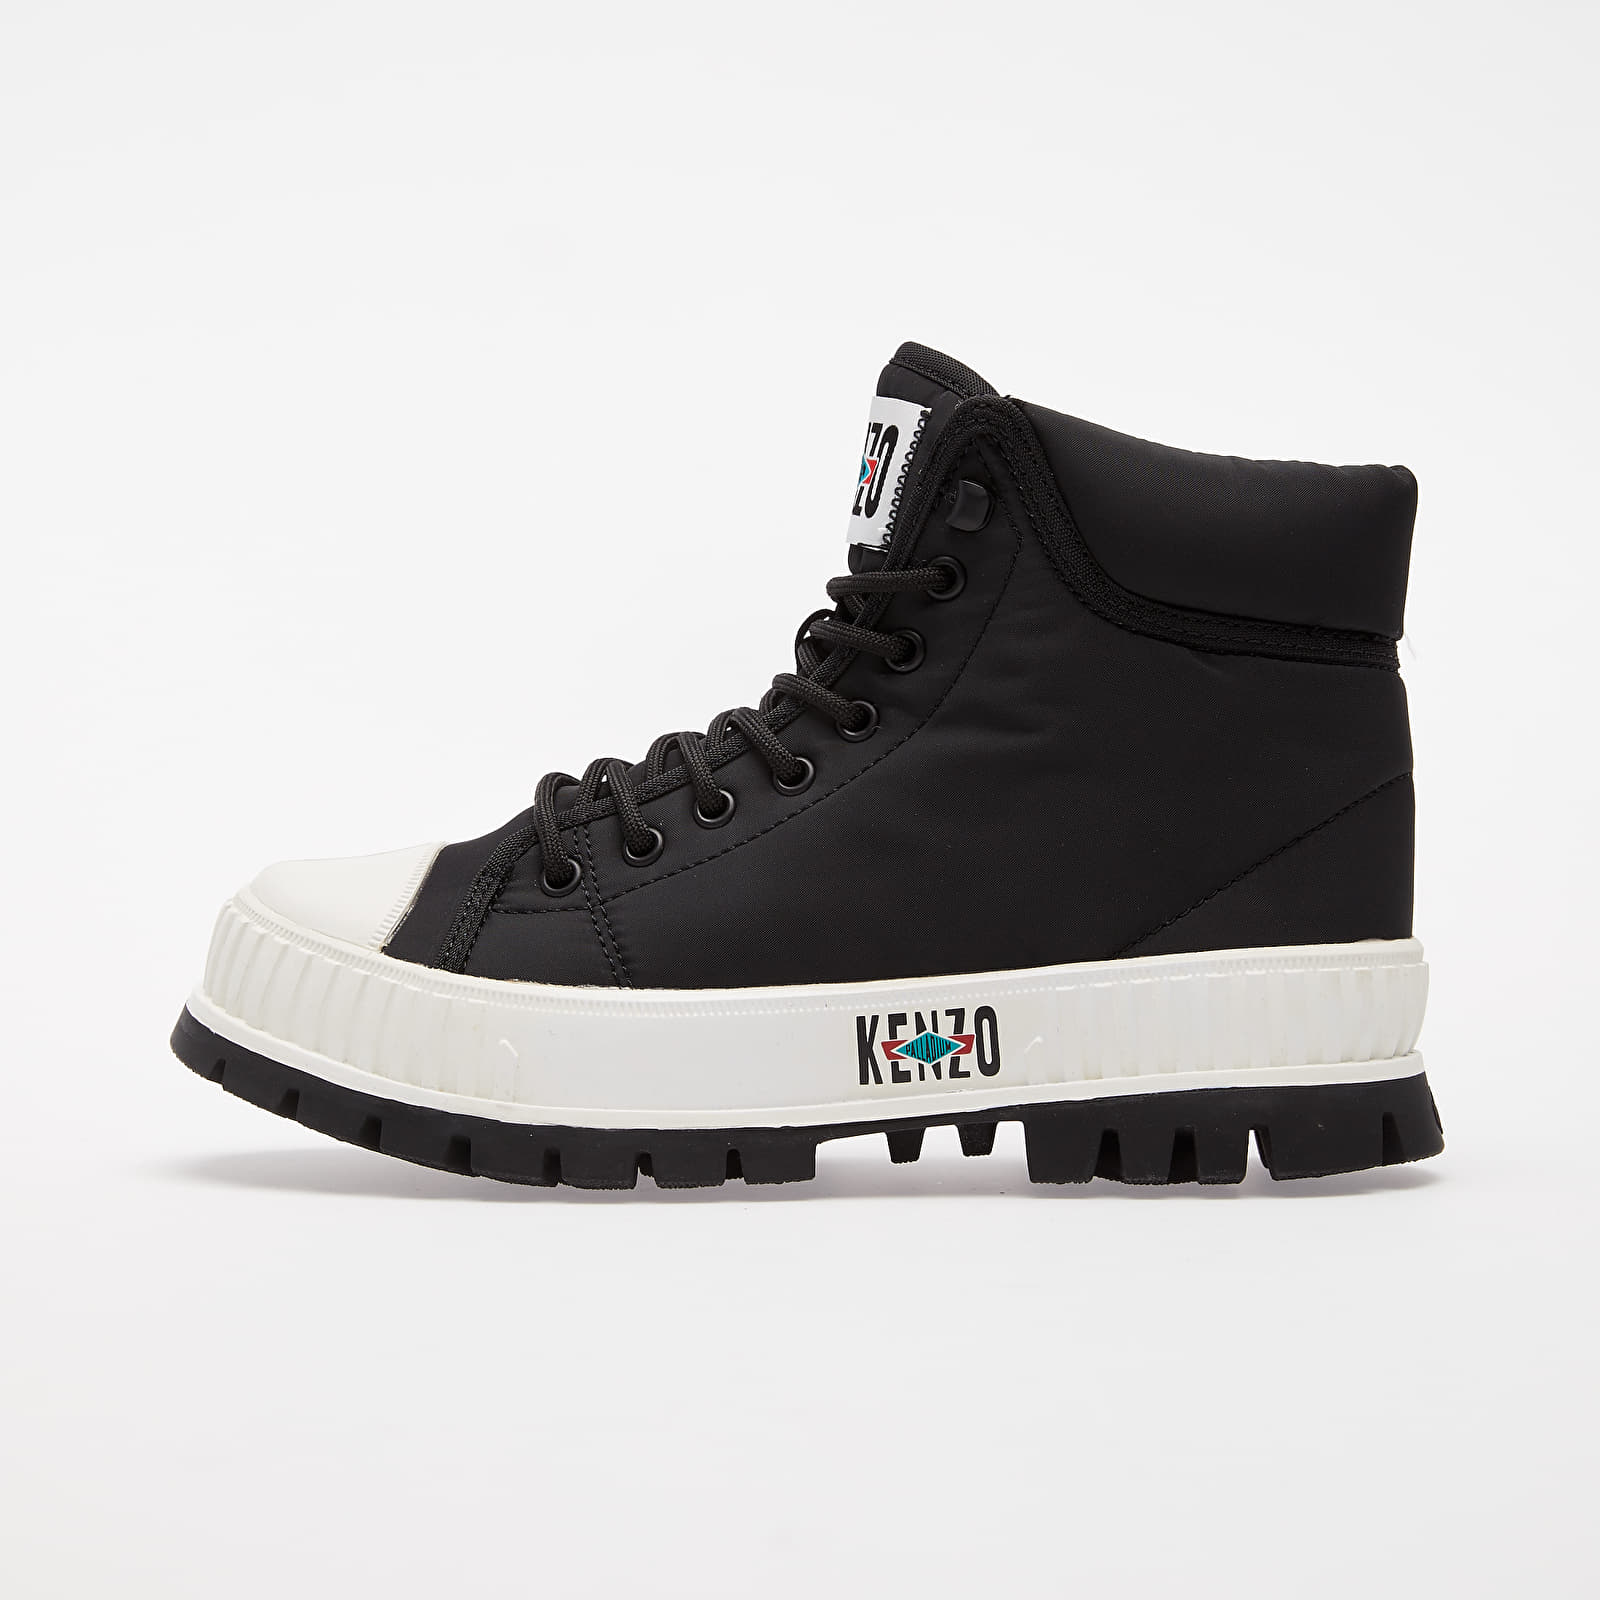 Women's shoes KENZO x Palladium High top Sneaker Black